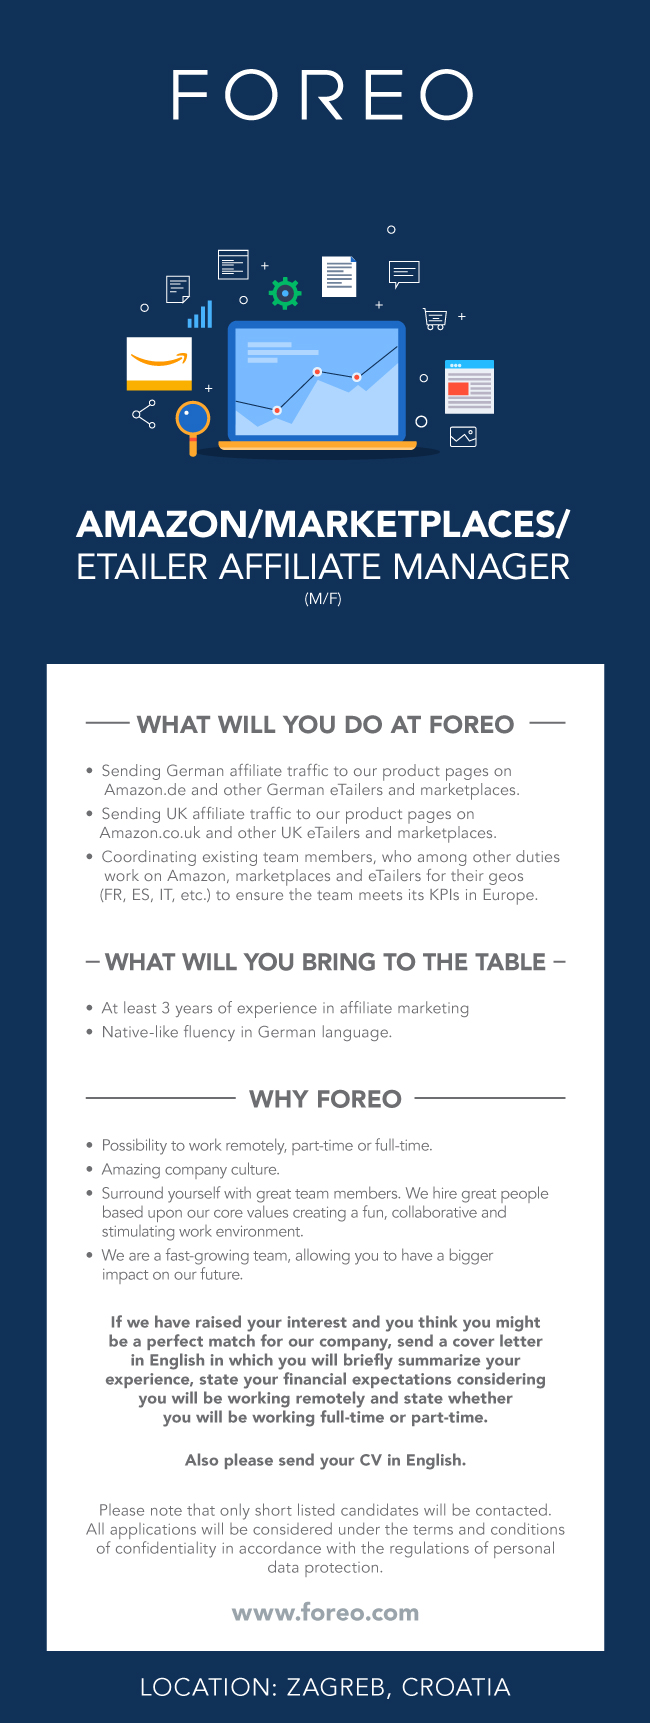 AMAZON/MARKETPLACES/ETAILER AFFILIATE MANAGER, FOREO EUROPE ...